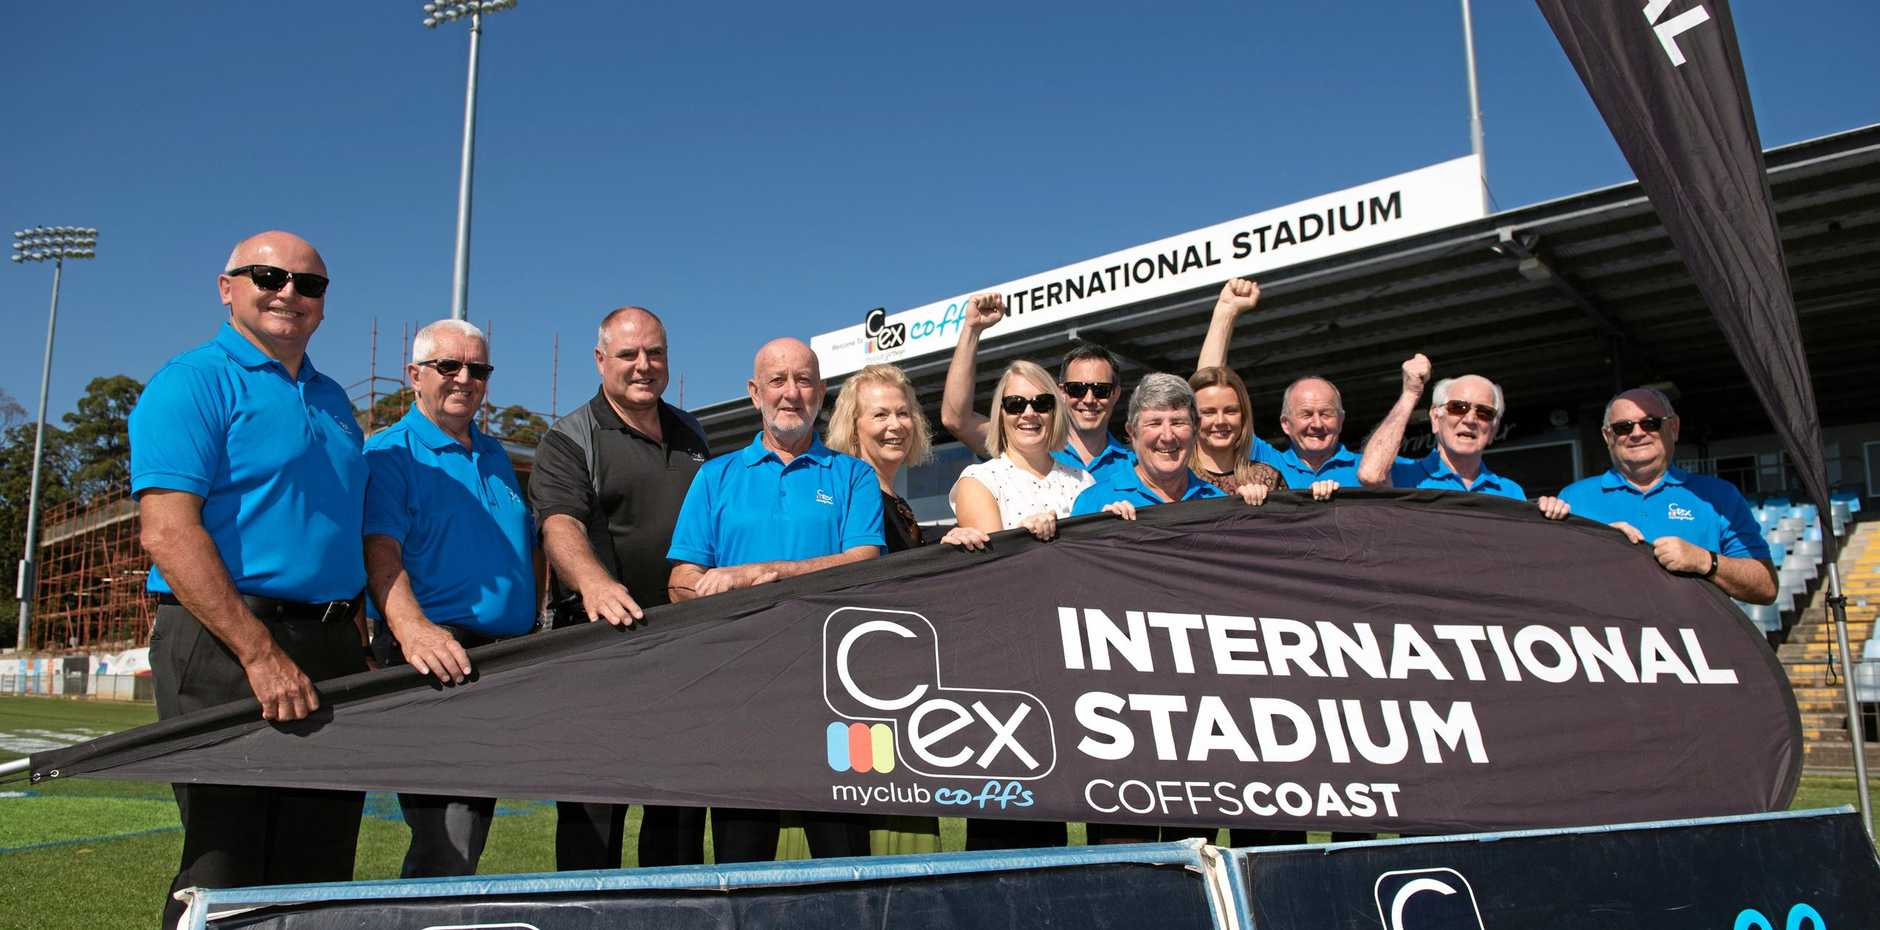 Coffs Harbour International Stadium will continue to be known as C.ex Coffs Stadium following the announcement of a new sponsorship agreement.